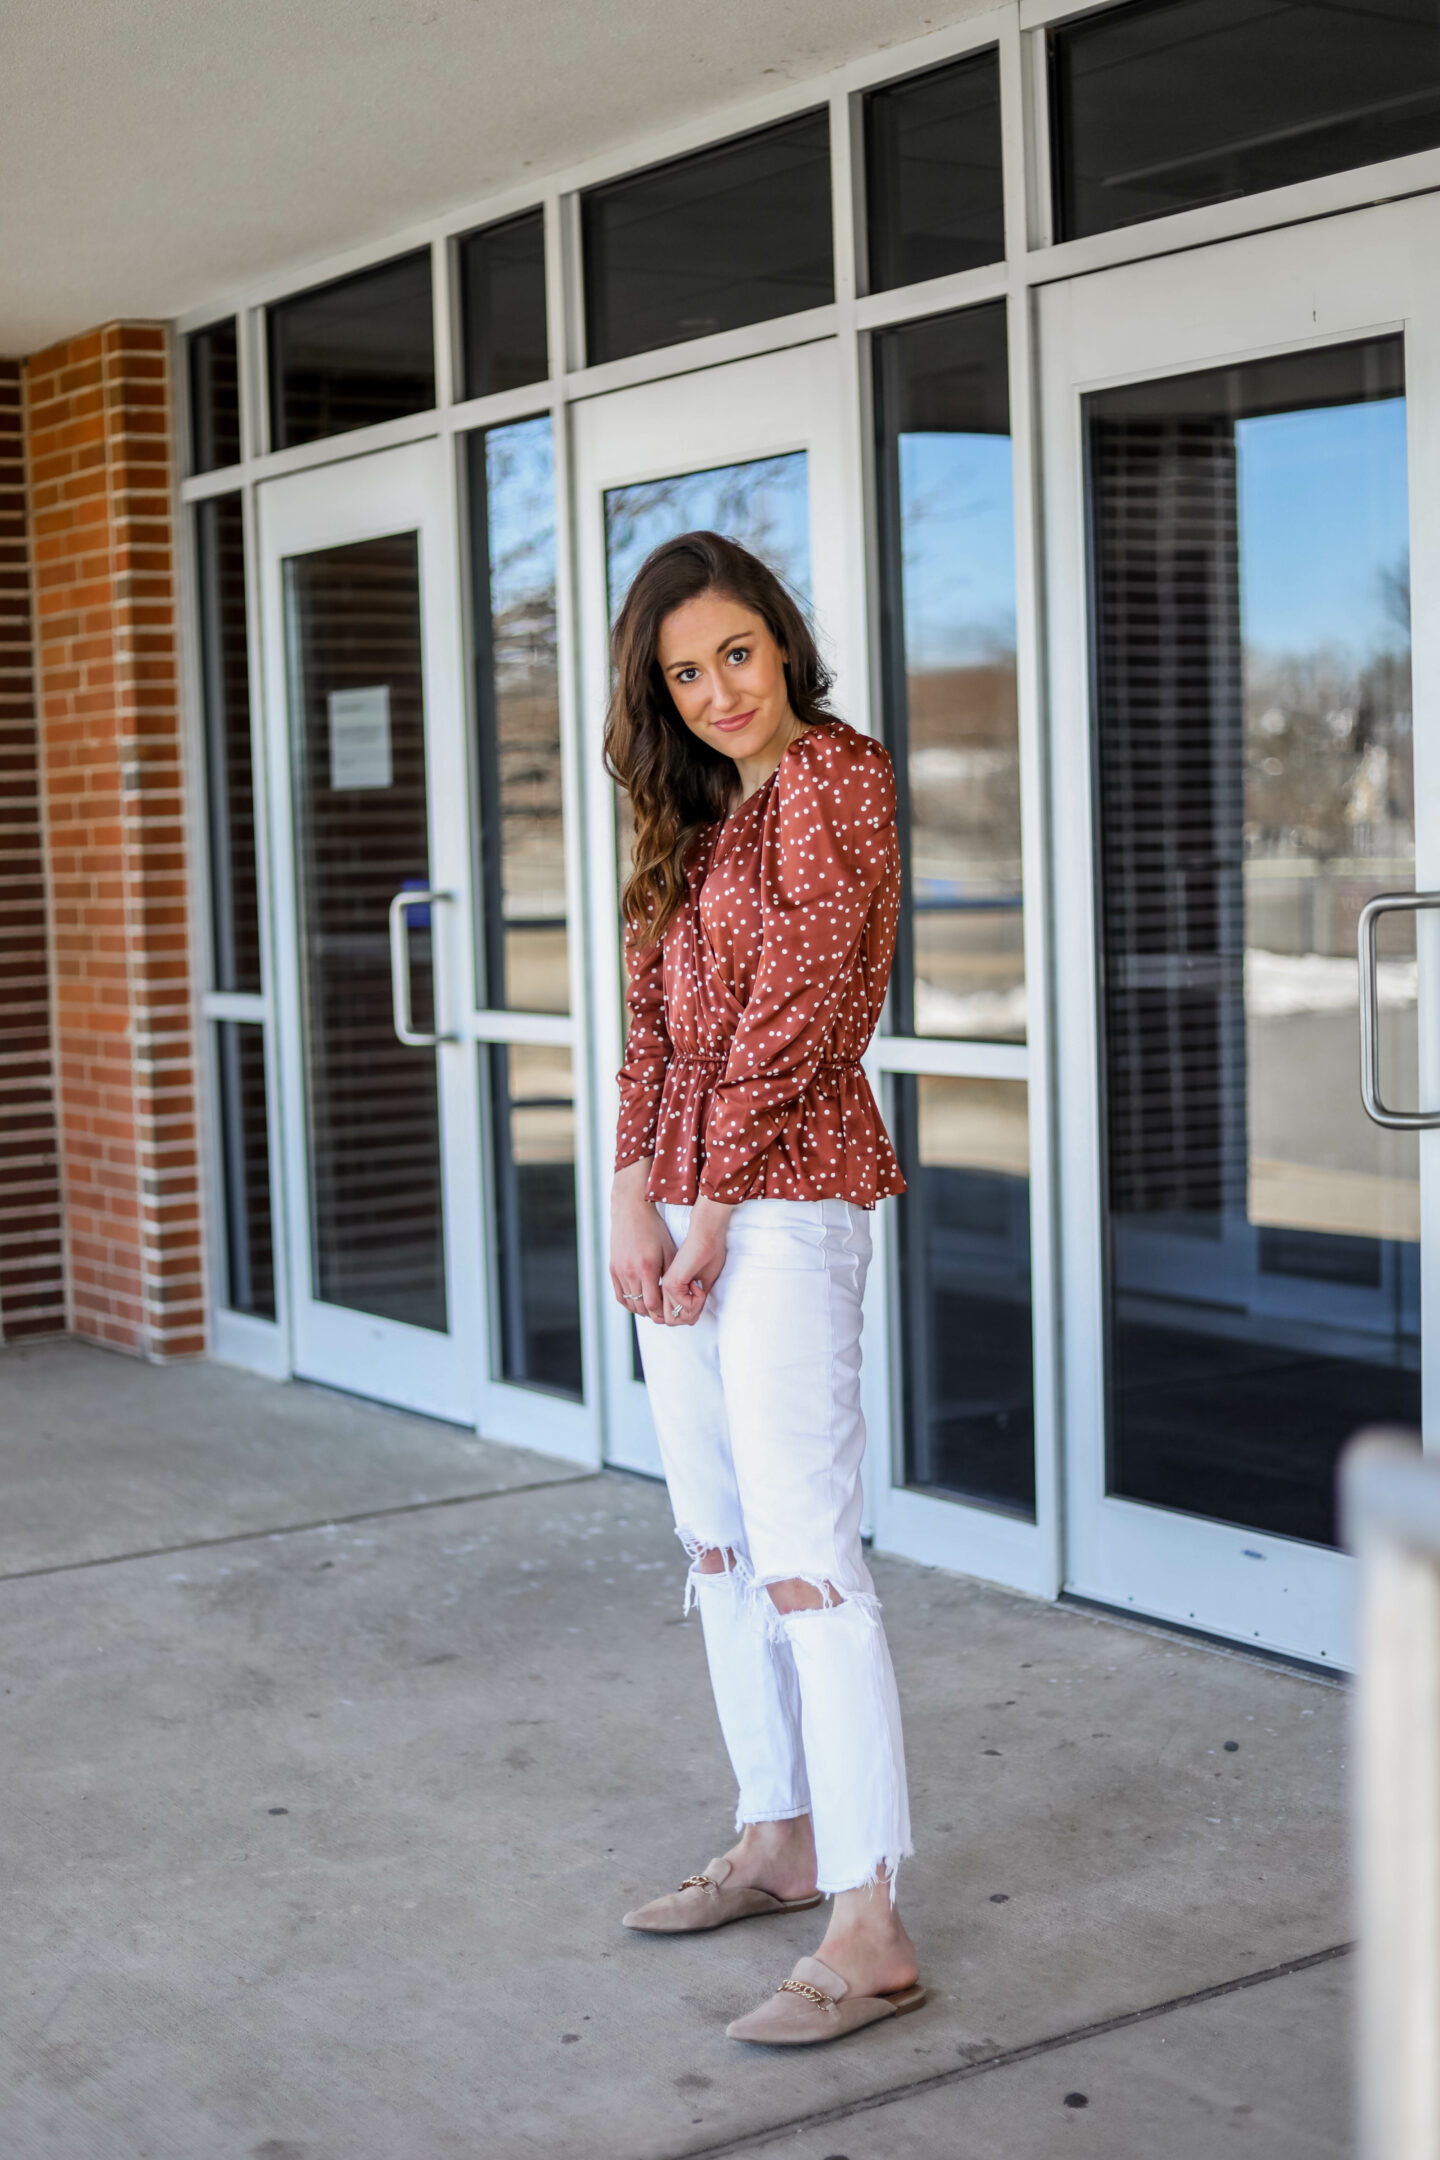 MY FAVORITE $26 TOP - Polka dot top from Walmart fashion on Coming Up Roses